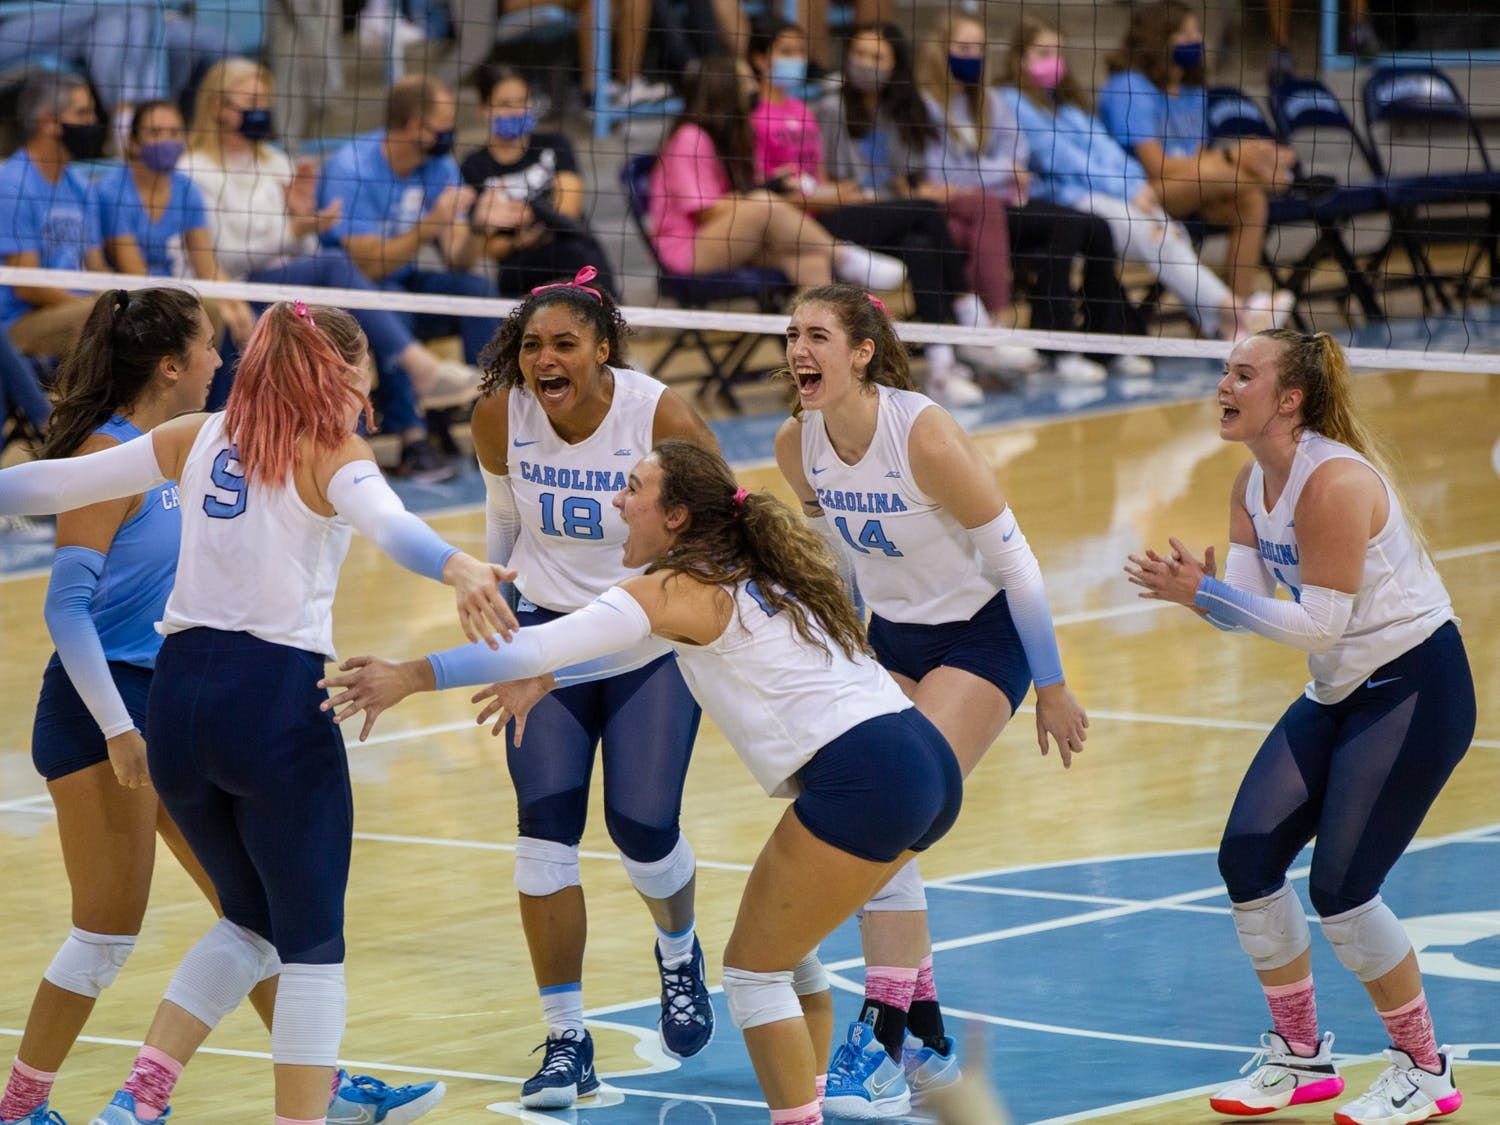 UNC women's volleyball players celebrate after scoring a point at the game against Duke on Oct. 22 at Carmicahel Arena. UNC won 3-0.